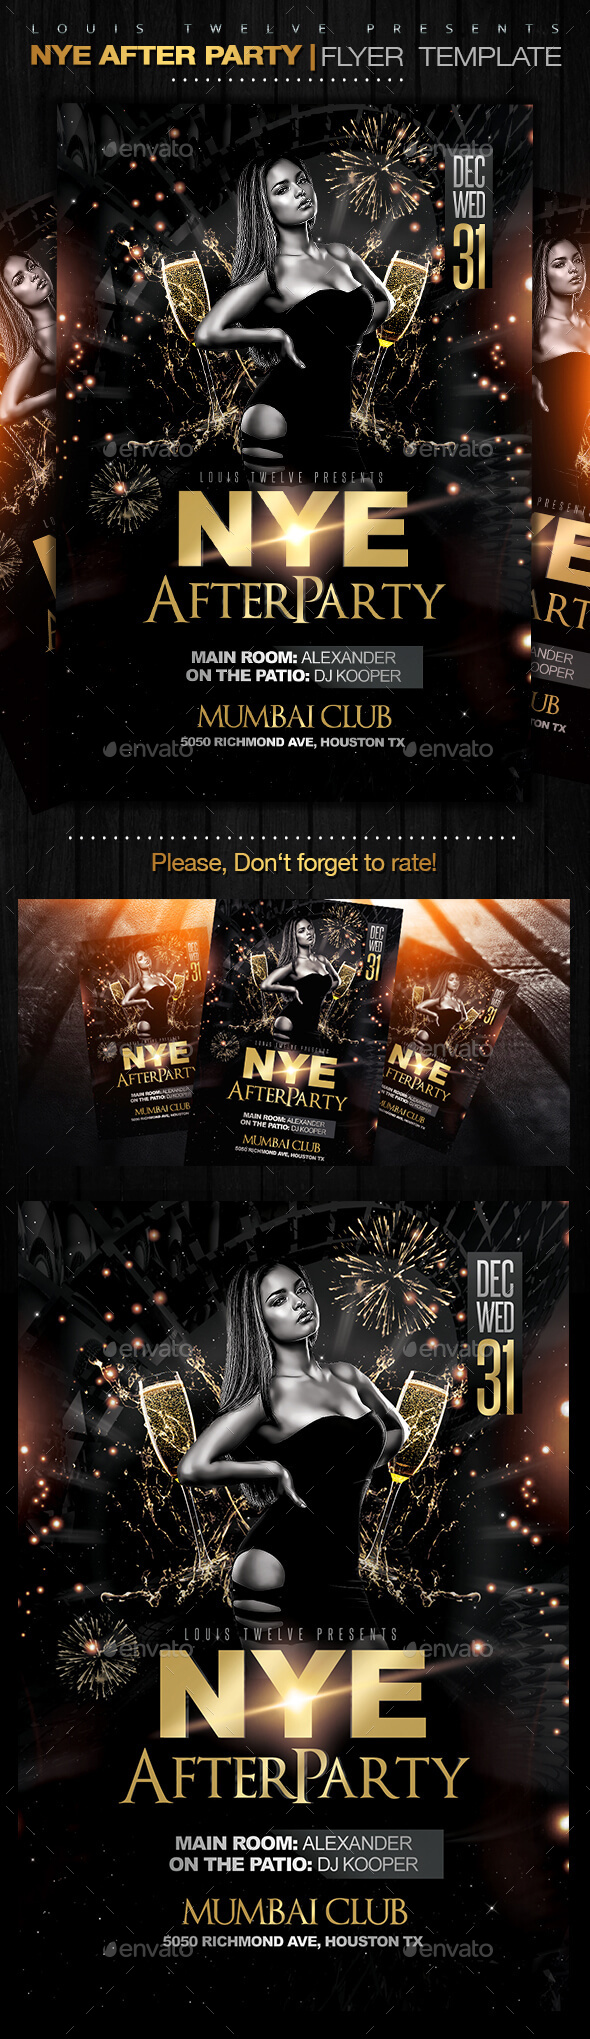 GraphicRiver NYE After Party Flyer Template 9821778